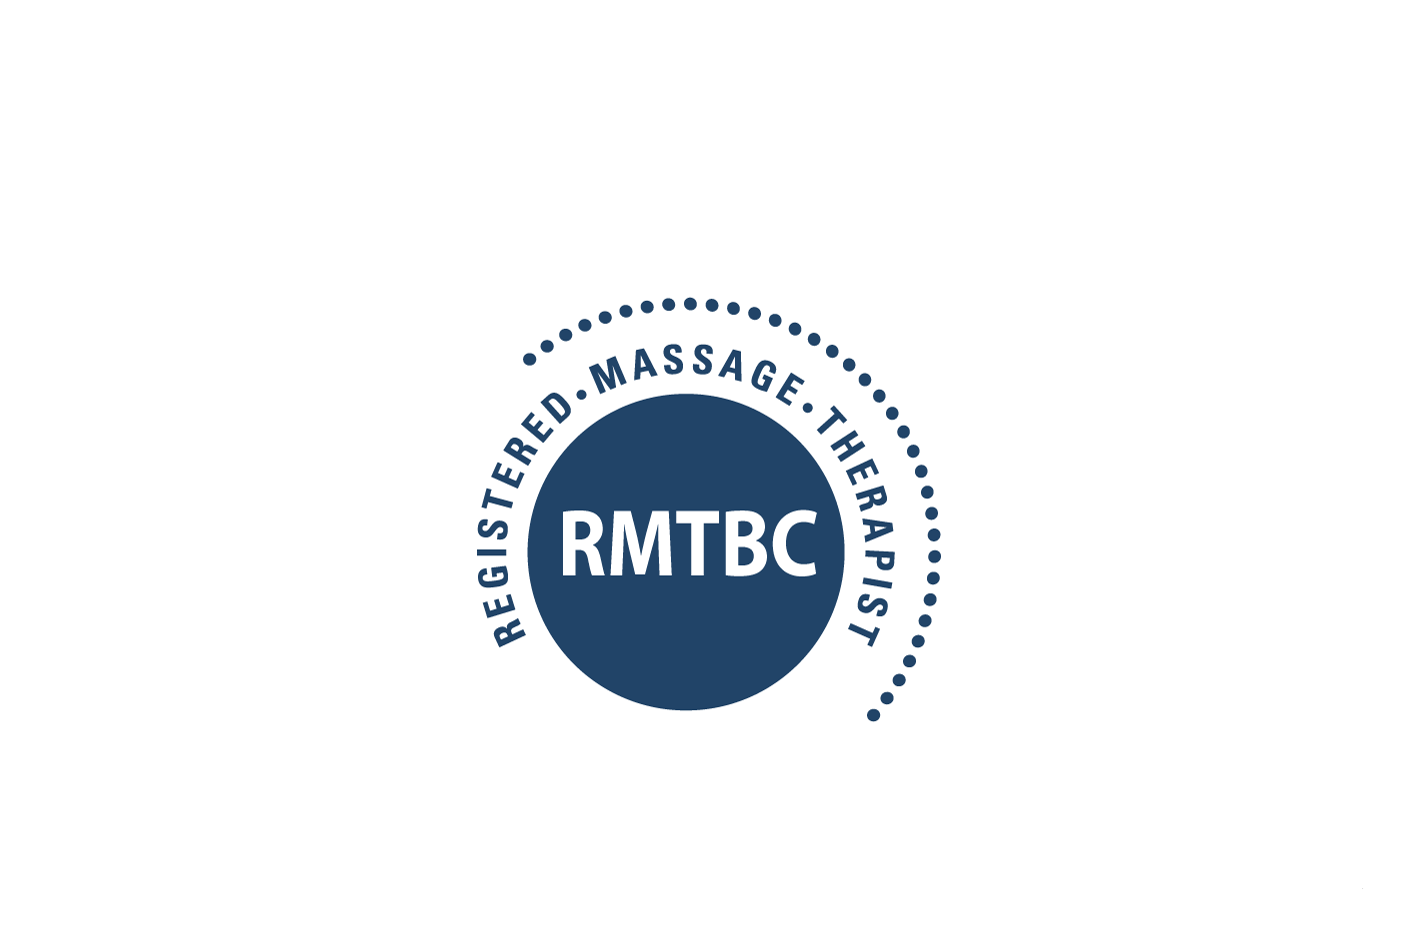 rmtbc-project